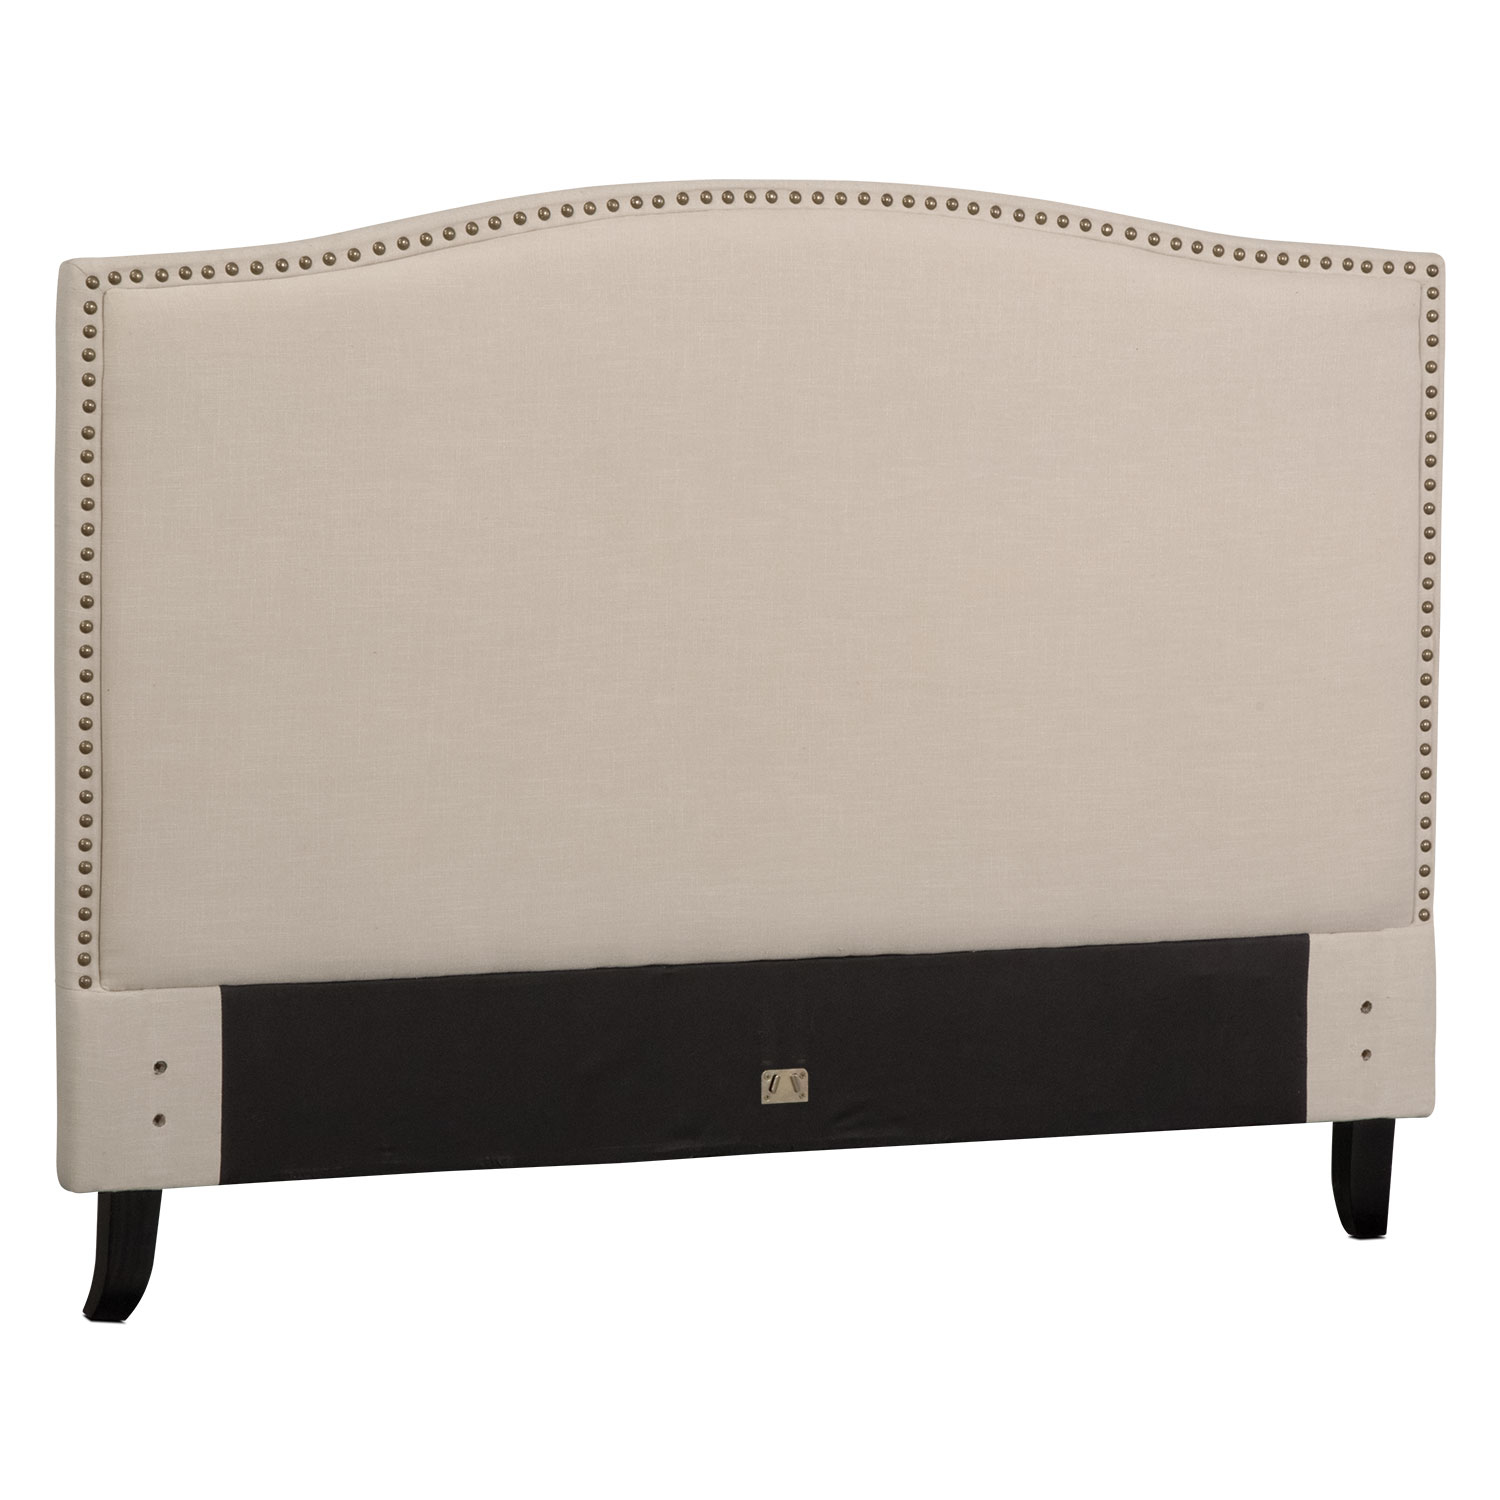 Aubrey Queen Upholstered Headboard - Sand